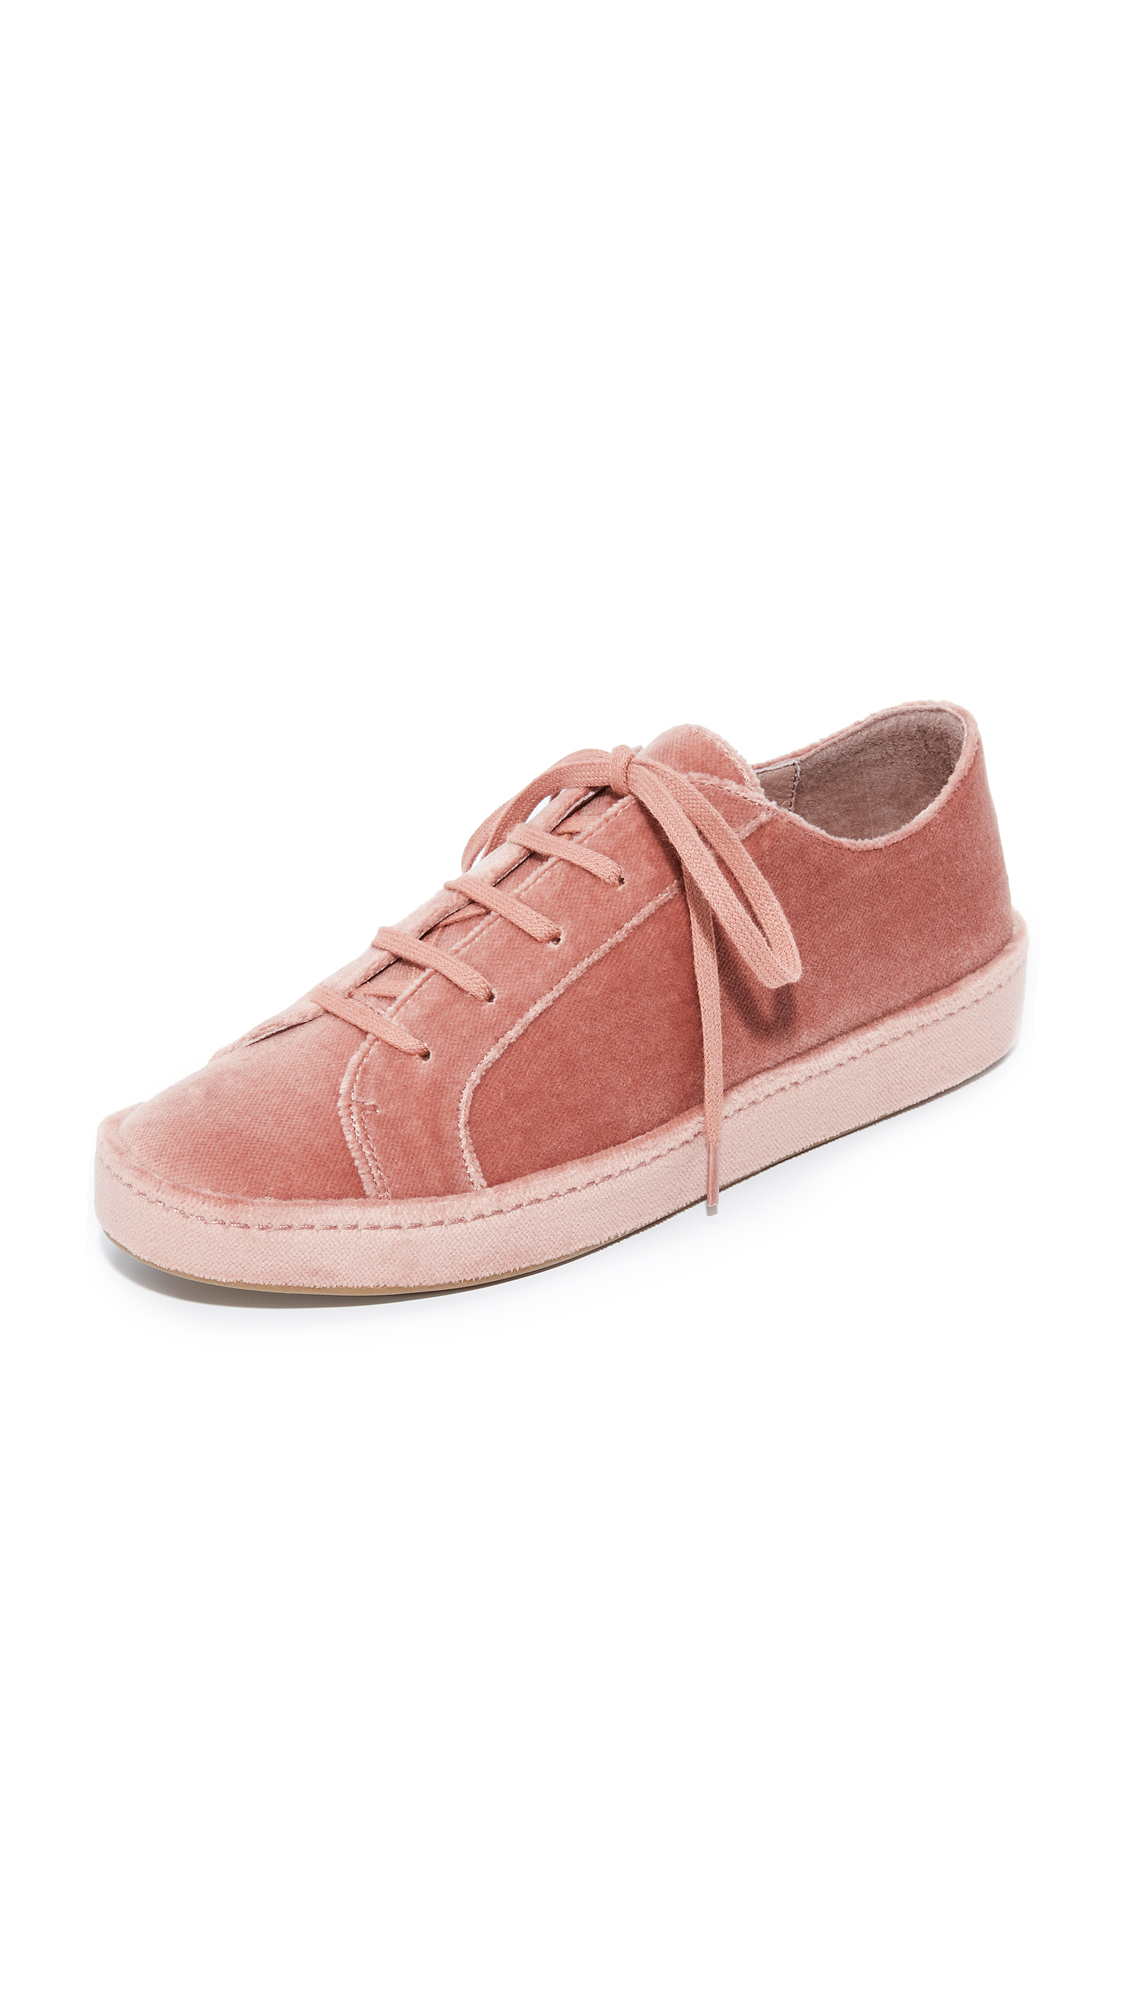 Joie Daryl Sneakers - Light Mauve